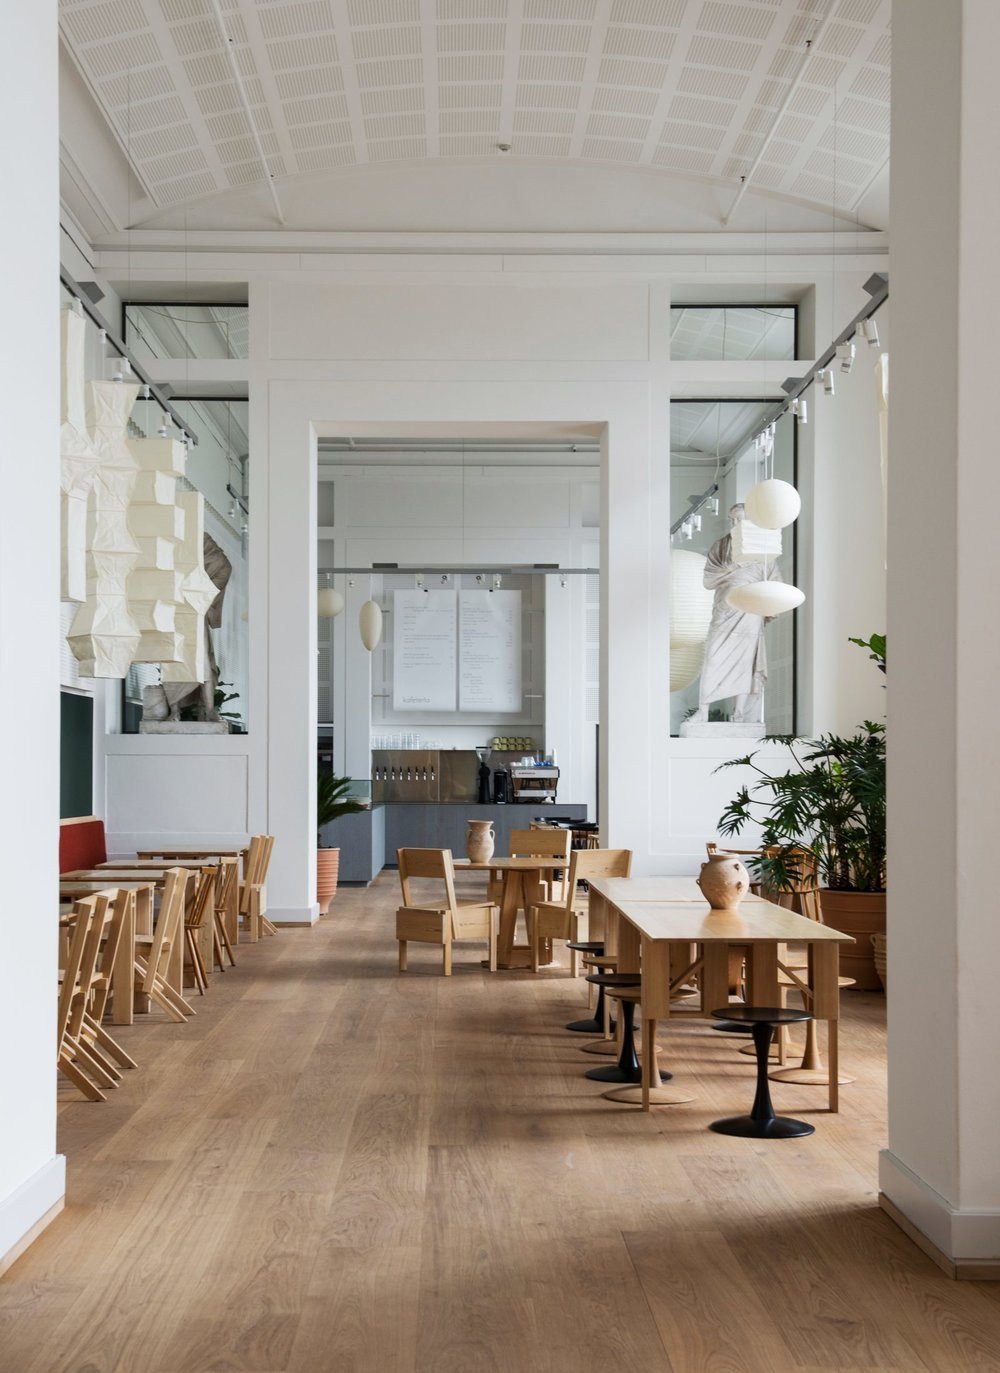 Kafeteria@National Gallery of Denmark (SMK) - Statens Museum for KunstSølvgade 48-50, 1307 Copenhagen KDanish and Japanese influences merge at this new cafe designed by artist Danh Vo and run by Copenhagen-based chef du jour Frederik Bille Brahe. The ambition for Kafeteria was to create synergy between food and art, and that's exactly what they succeeded in doing by combining Italian designer Enzo Maris's do-it-yourself furniture and Noguchi-esque lamps with Bille Brahe's green kitchen.